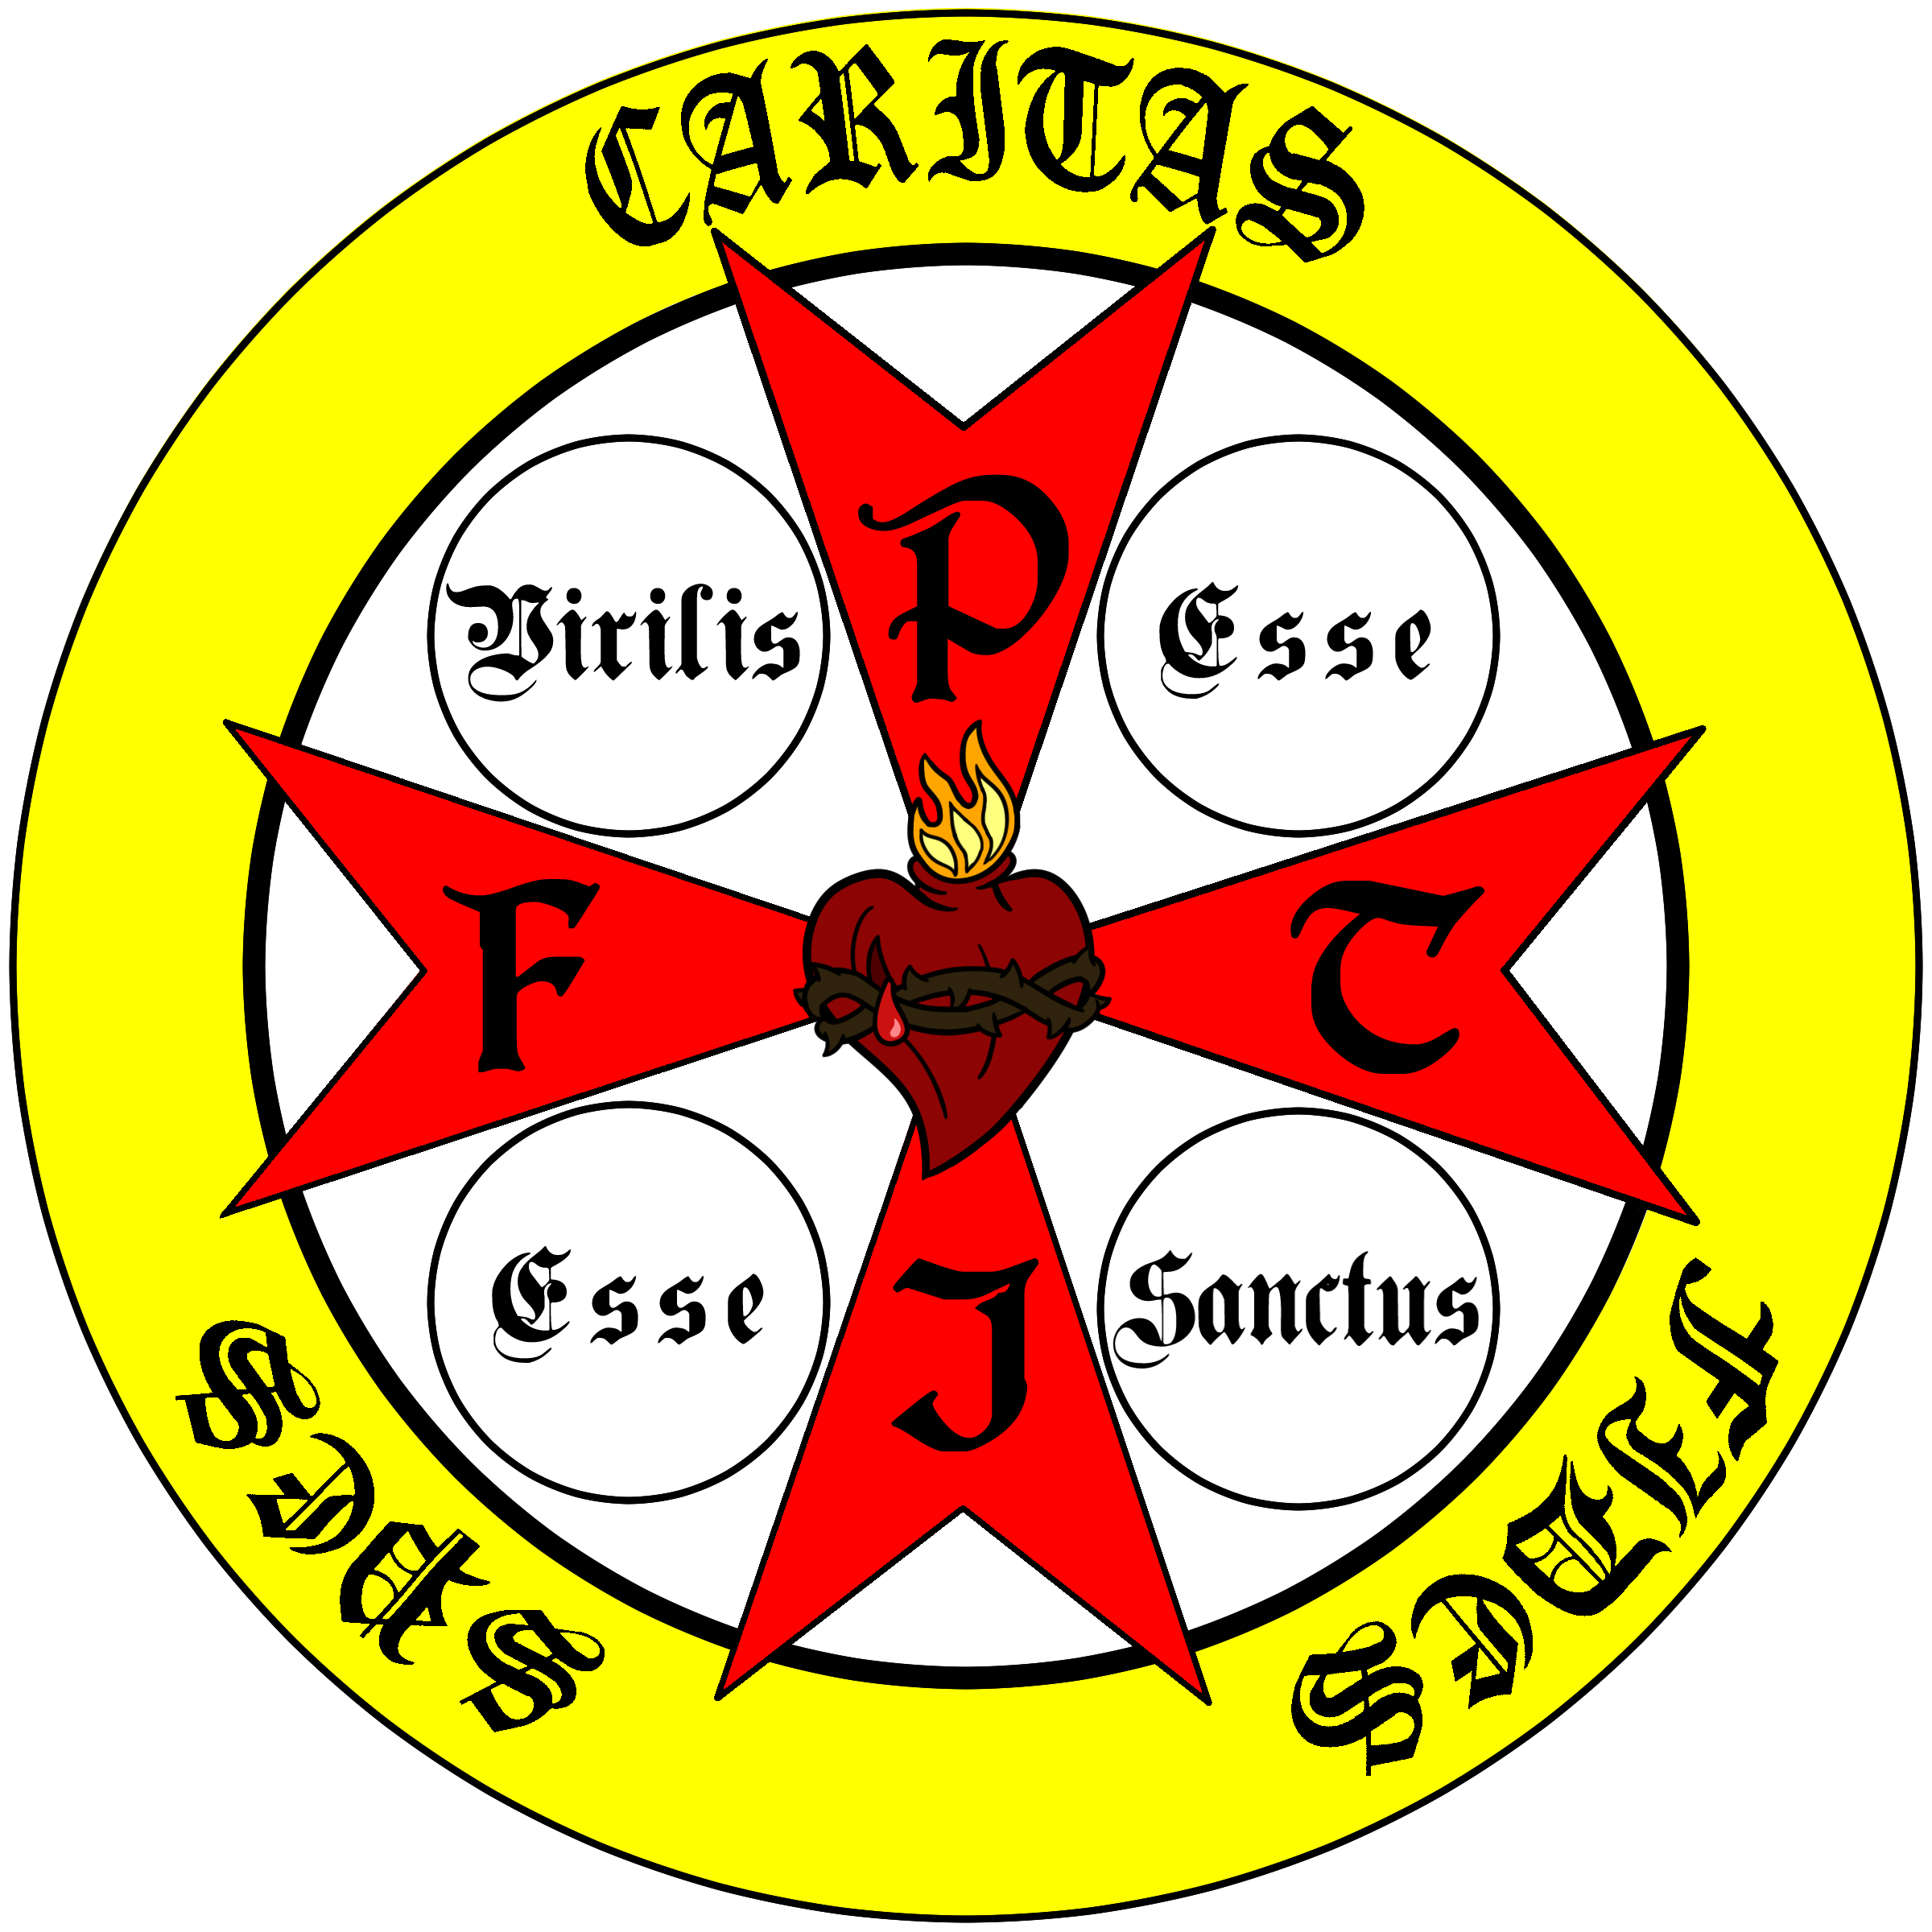 "The Official Camp Greatness Logo  (an explanation): In the center of the logo and placed over a red Crusader's Cross is the pierced Sacred Heart of Jesus. On each arm of the Crusader's Cross are the letters (clockwise): P, T, I, F. These letters represent the Four Cardinal Virtues (in Latin: Prudentia, Temperantia, Iustitia, Fortitudo) and when practiced, like the Cardinal Directions, point us to a place: the Sacred Heart of Jesus. These virtues can be attained through human merit (as in, they do not require grace to be practiced), therefore they are placed in red (symbolizing humanity) and reside within but seem to proceed from the yellow circle around the outside of the logo, teaching us that although these virtues do not require grace, they are strengthened by a life of grace. Around the aforementioned symbols is a yellow circle (symbolizing heaven) with the Three Theological Virtues in Latin: Faith, Hope, and Charity. These virtues can only be obtained through a life of grace. Finally, within this logo is the phrase: ""Virilis esse, esse sanctus."" Which translates: ""To be manly is to be holy."""